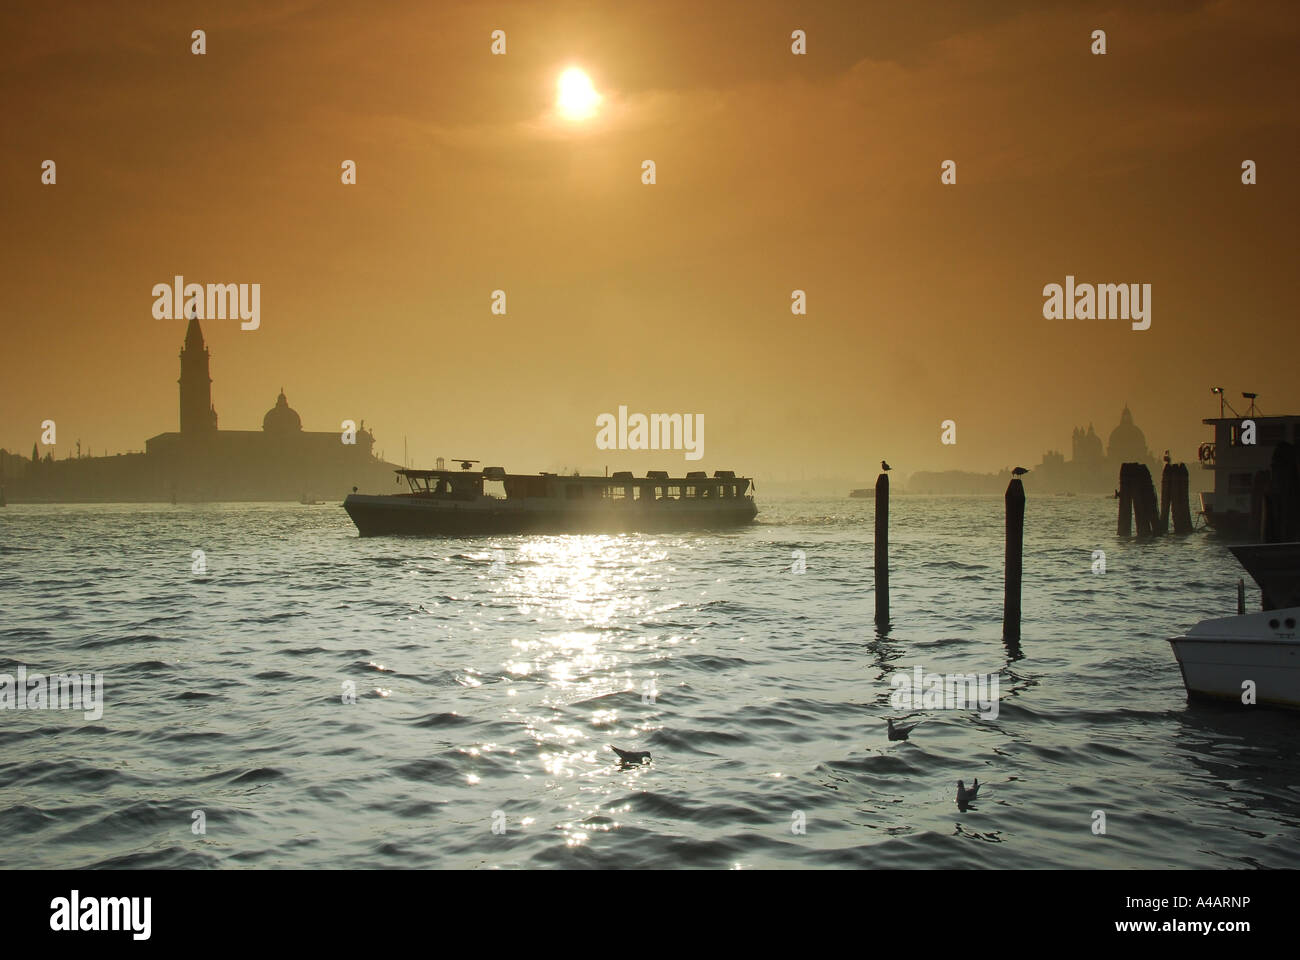 A vaporetto leaves its mooring on the Canale Di San Marco in Venice with the chuch of San Giorgio Maggiore across - Stock Image